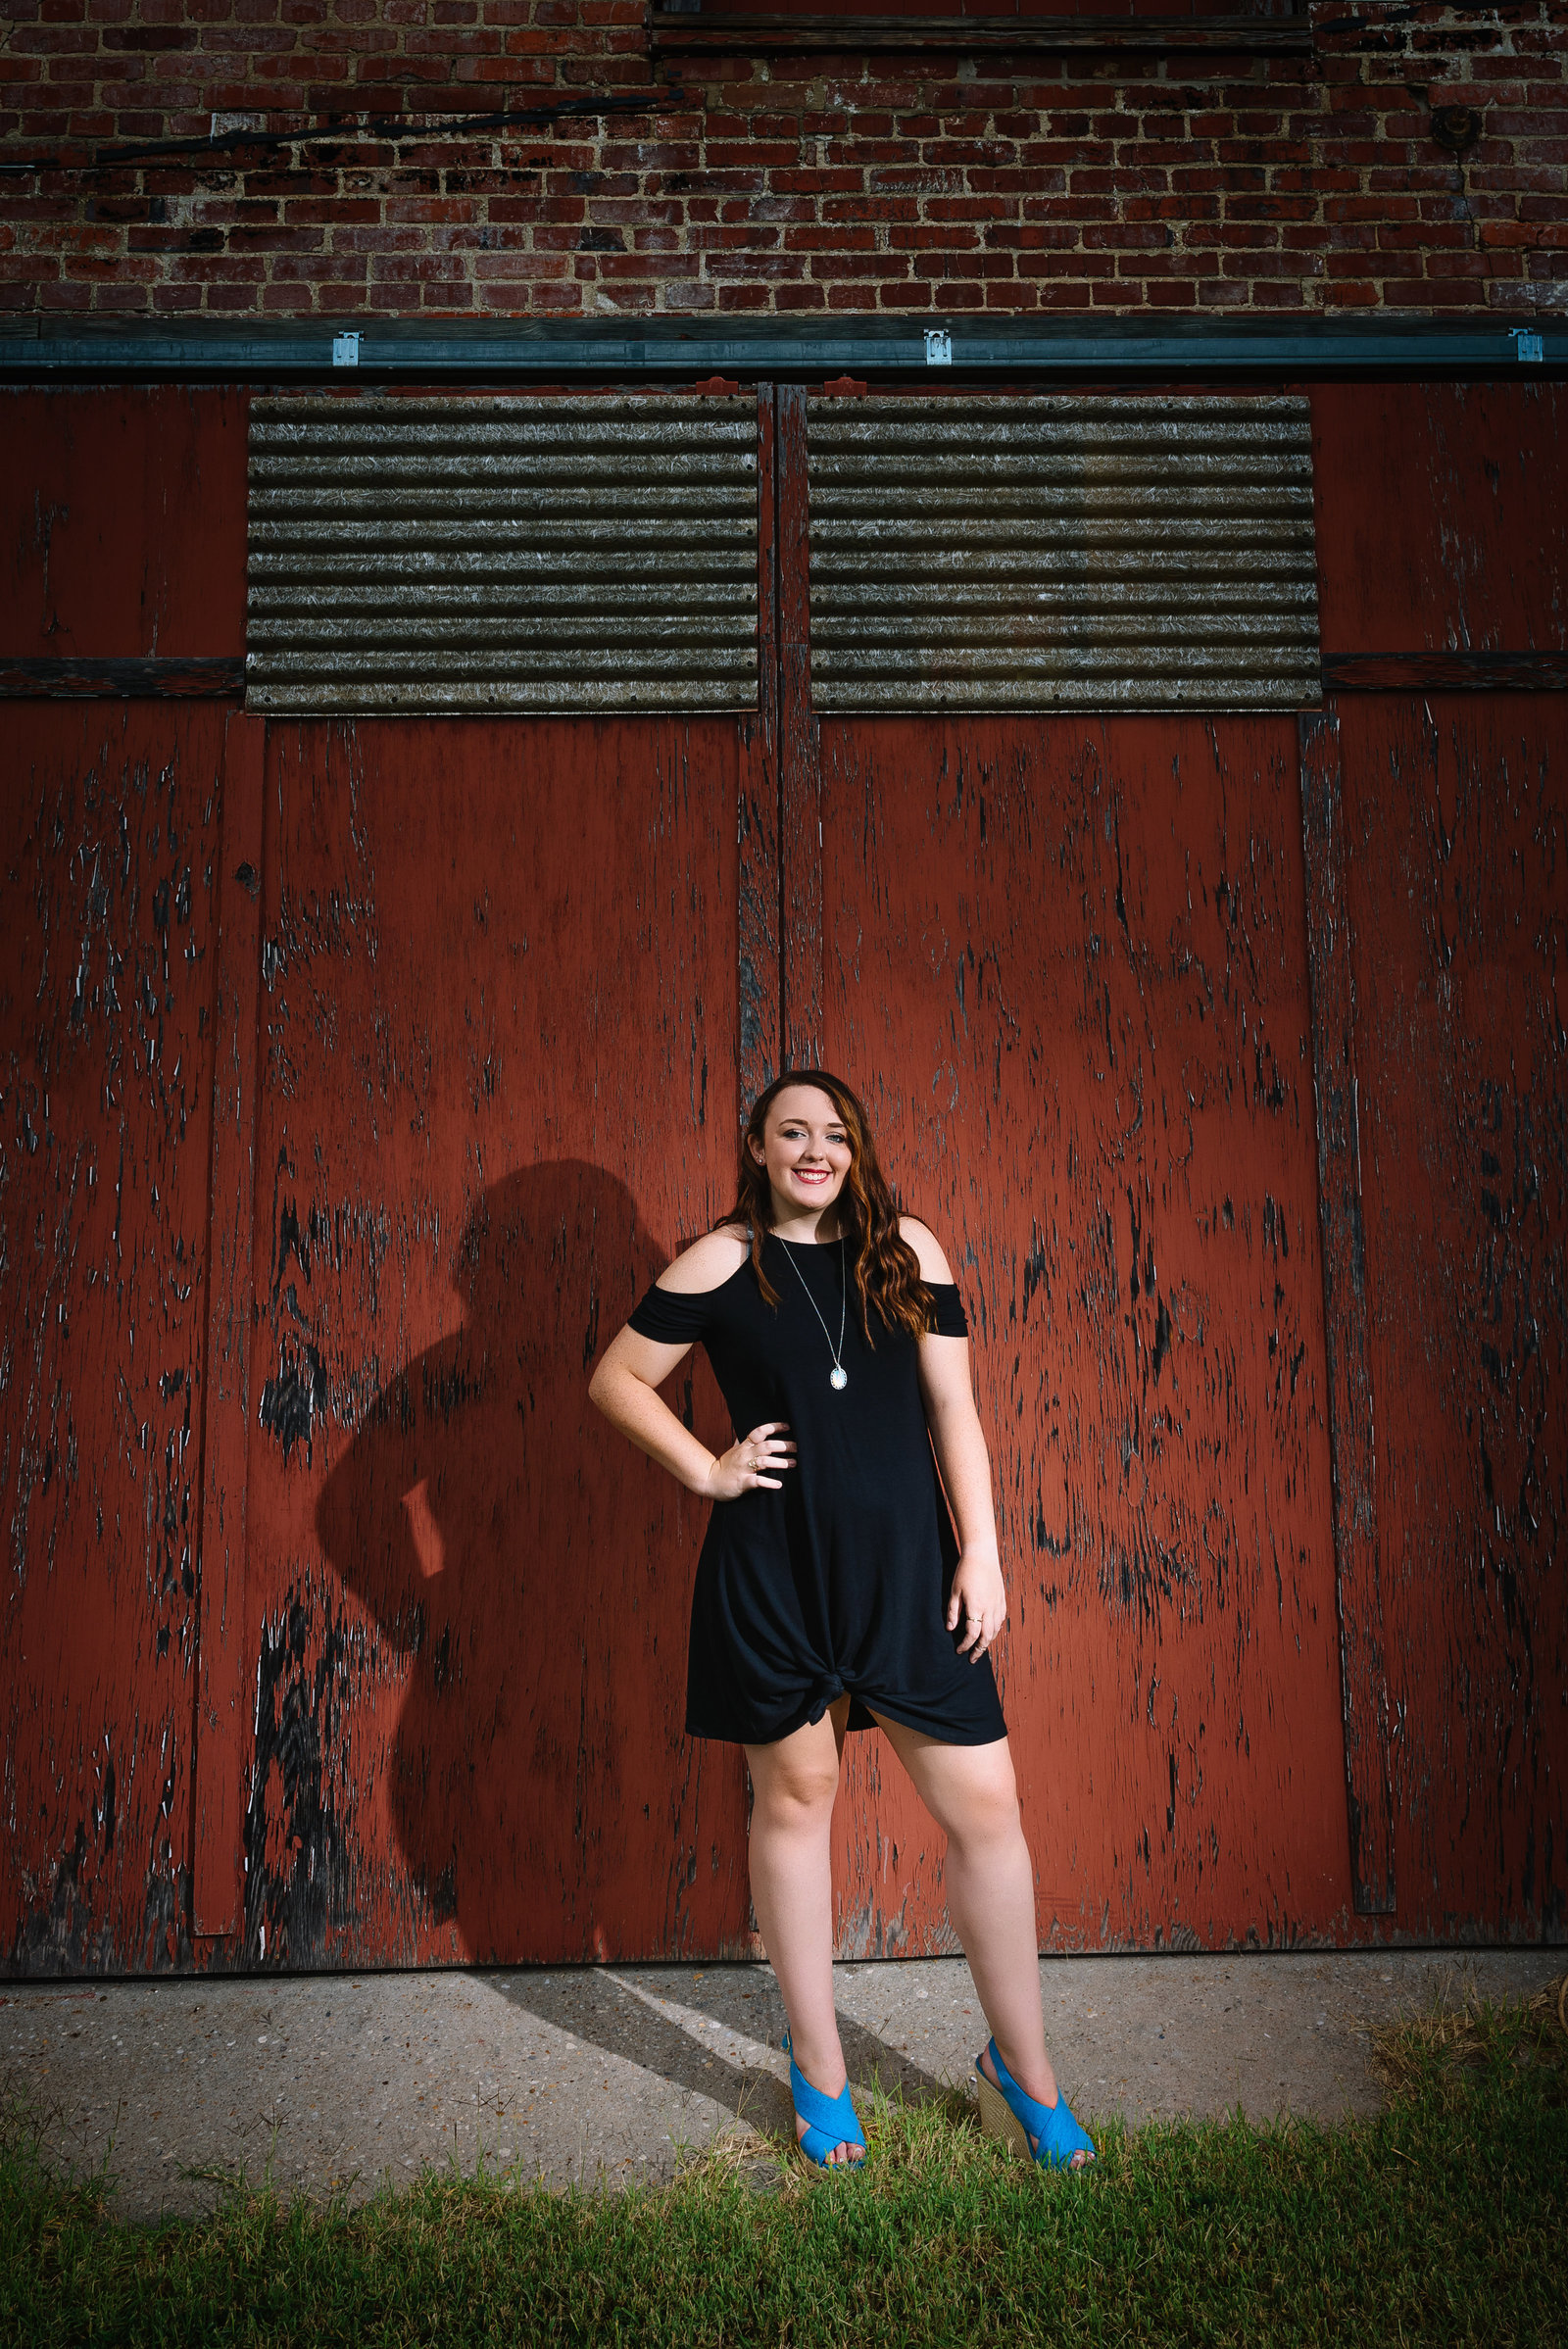 cambridge md senior portraits nicole barr 7